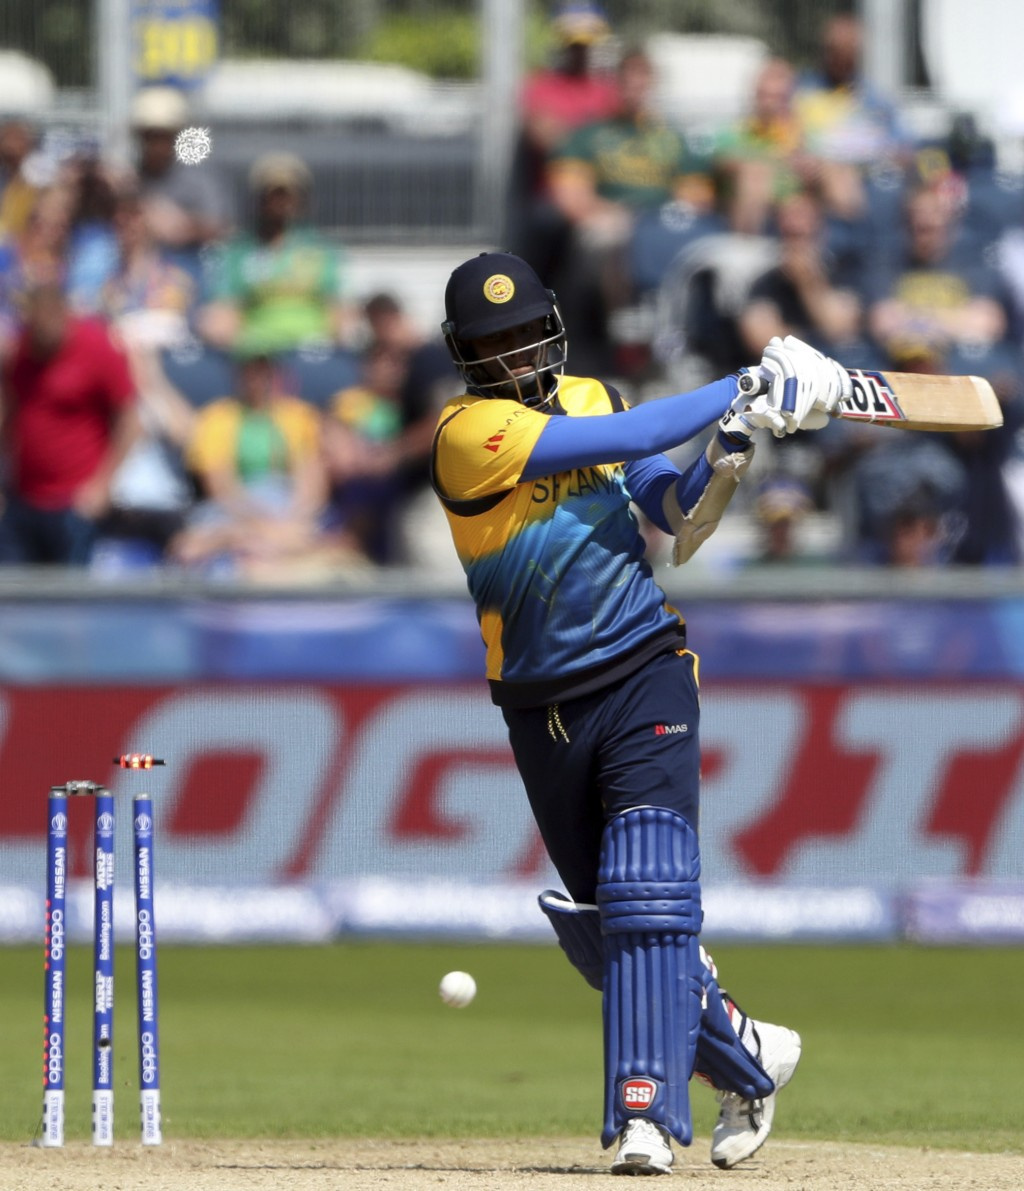 Sri Lanka's batsman Angelo Mathews is bowled by South Africa's bowler Chris Morris during the Cricket World Cup match between Sri Lanka and South Afri...